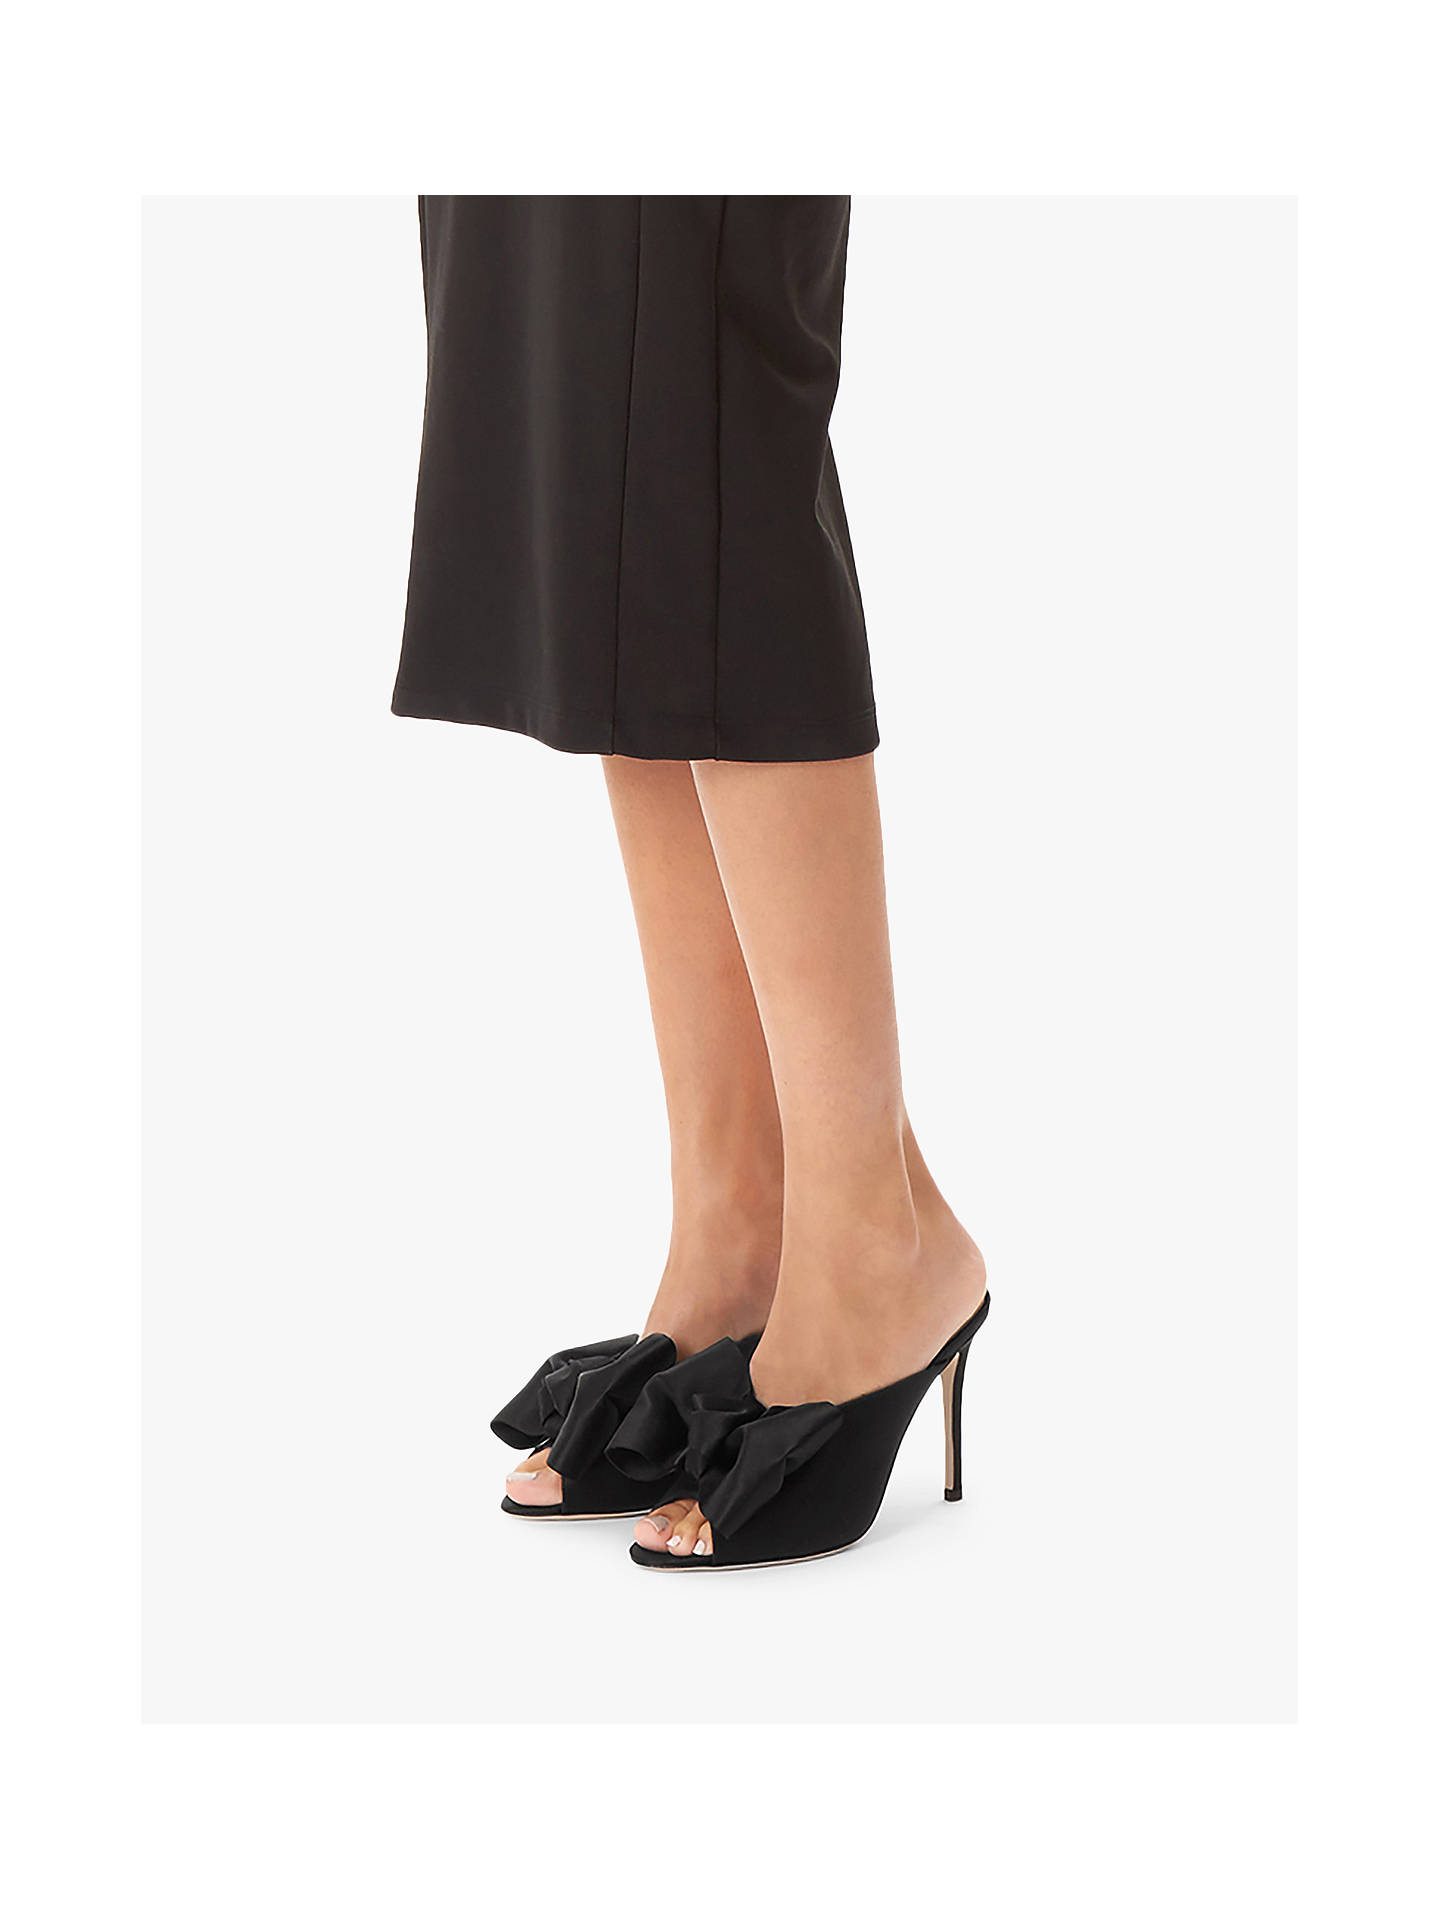 BuySJP by Sarah Jessica Parker Vesper Peep Toe Heeled Sandals, Black, 2 Online at johnlewis.com